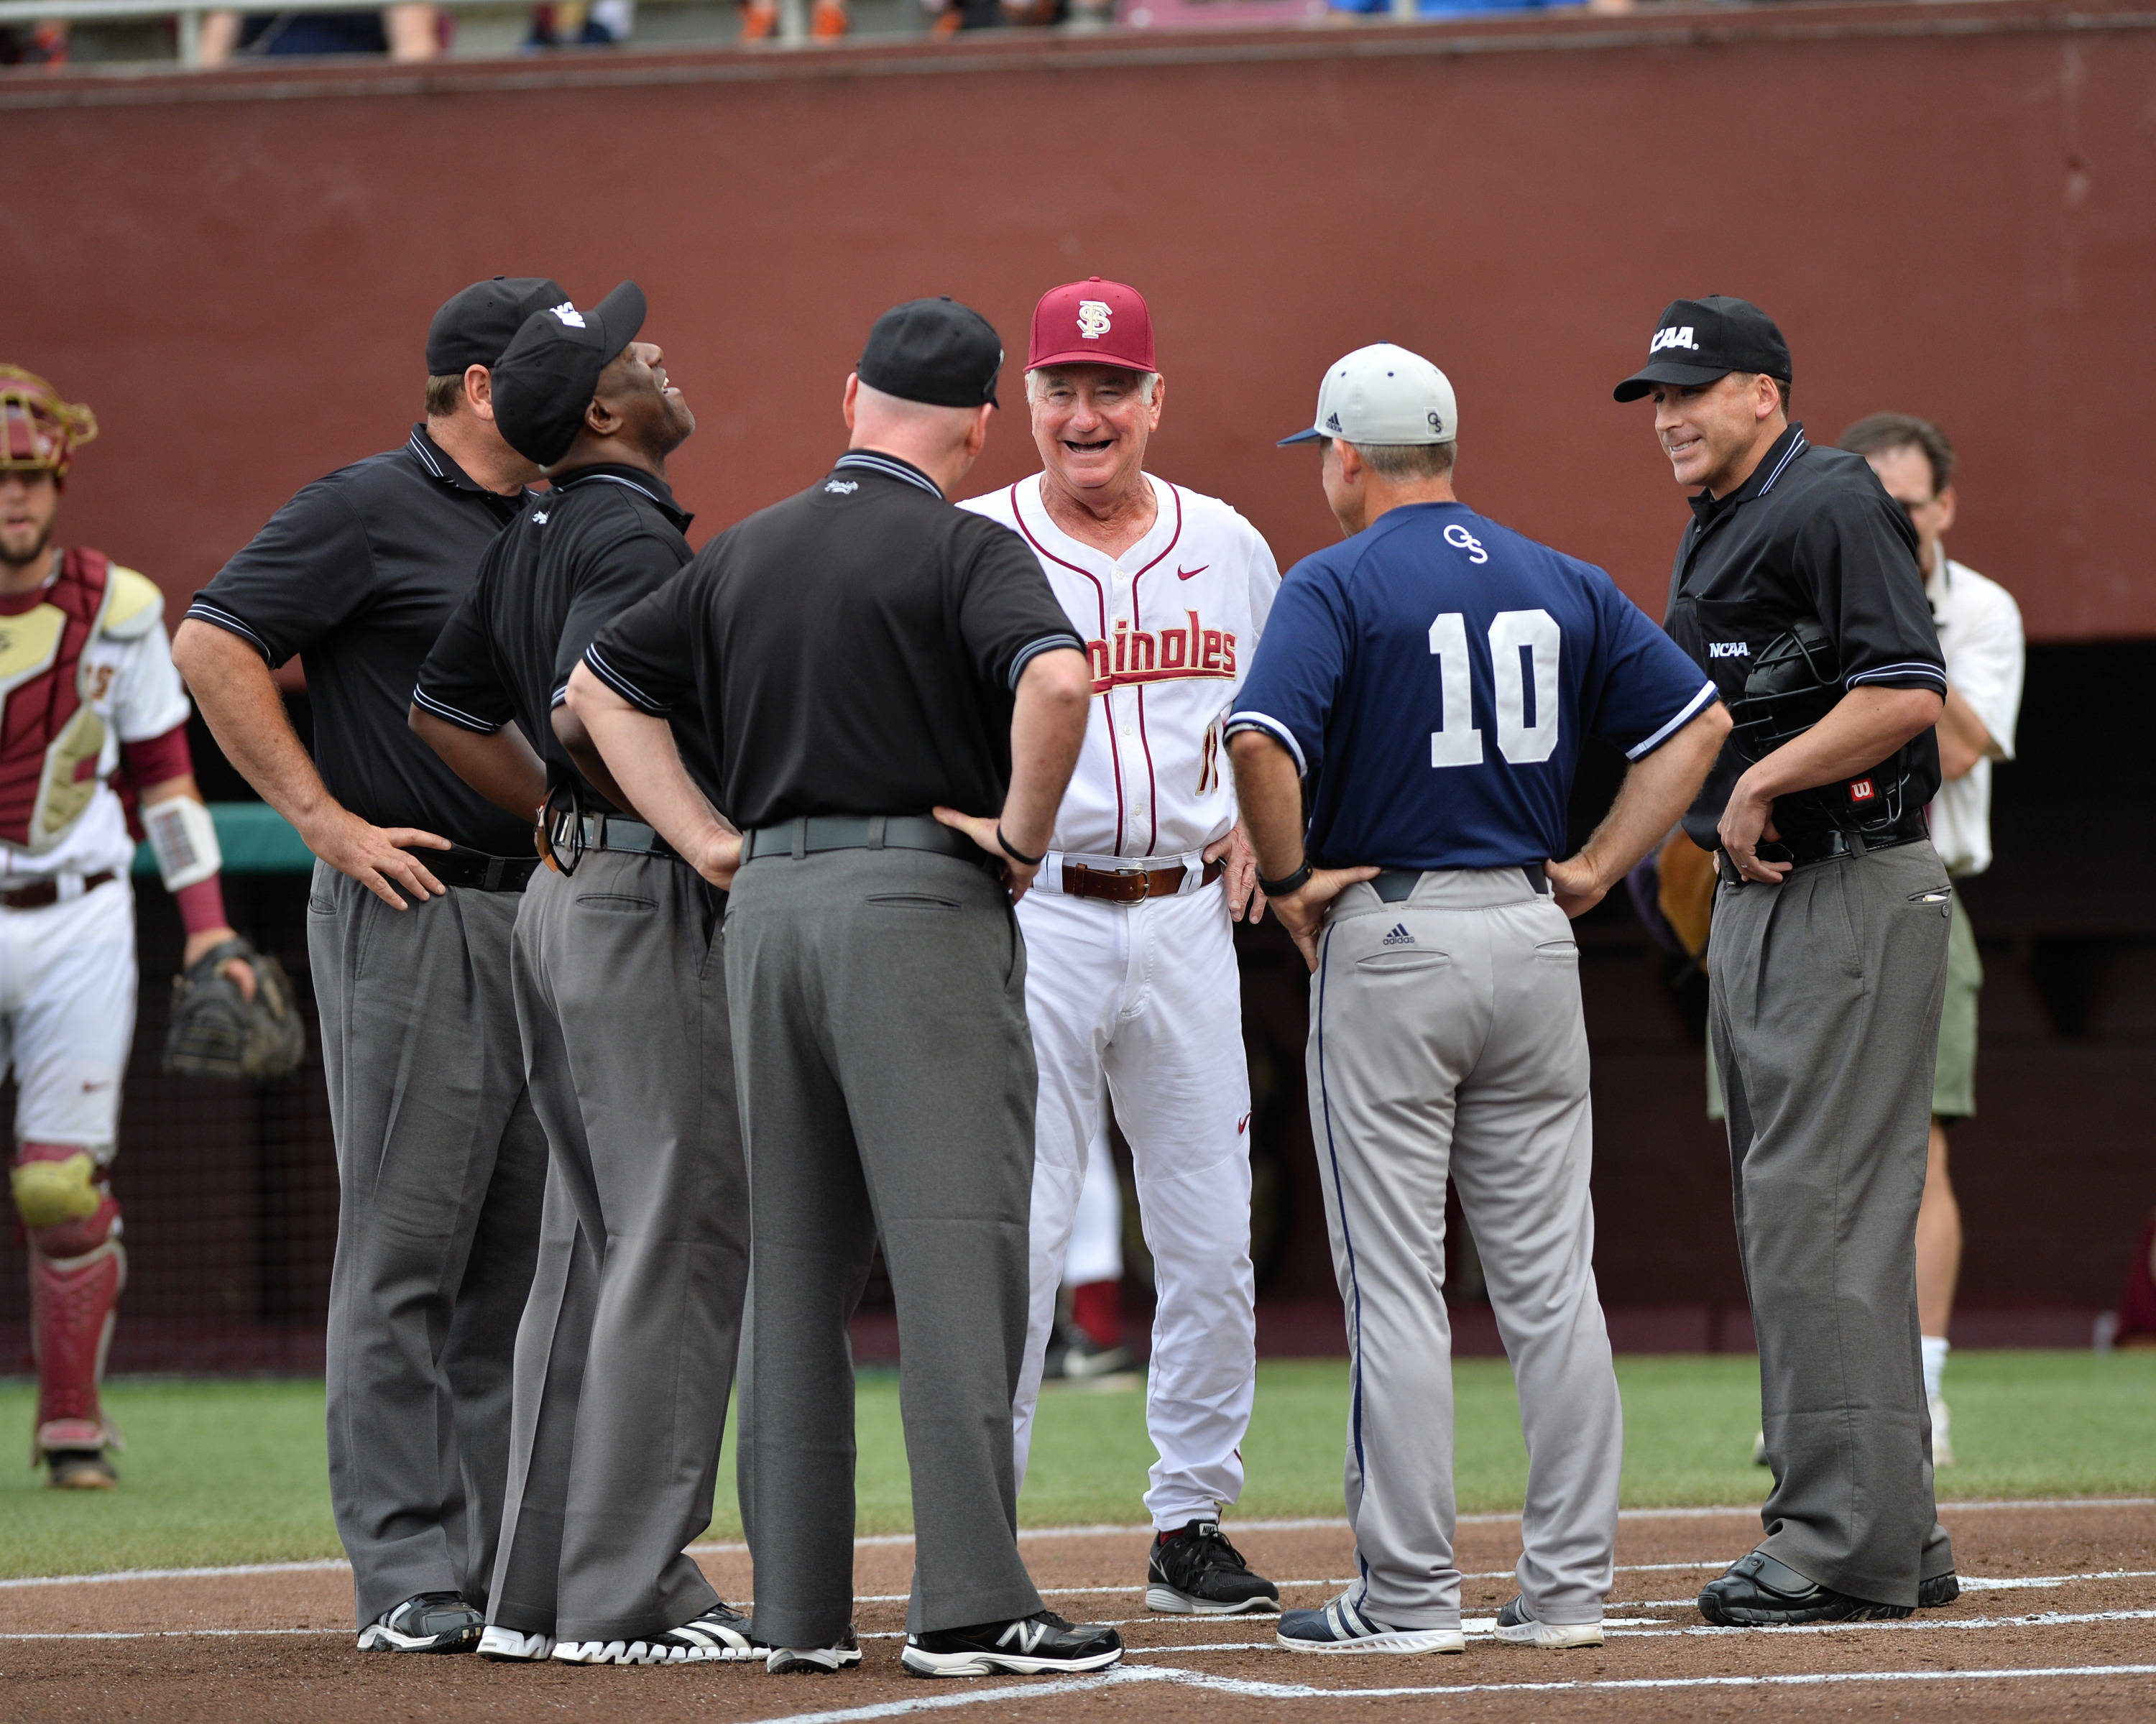 FSU head coach Mike Martin and GSU head coach Rodney Hennon talk to the umpires prior to Friday's first pitch.